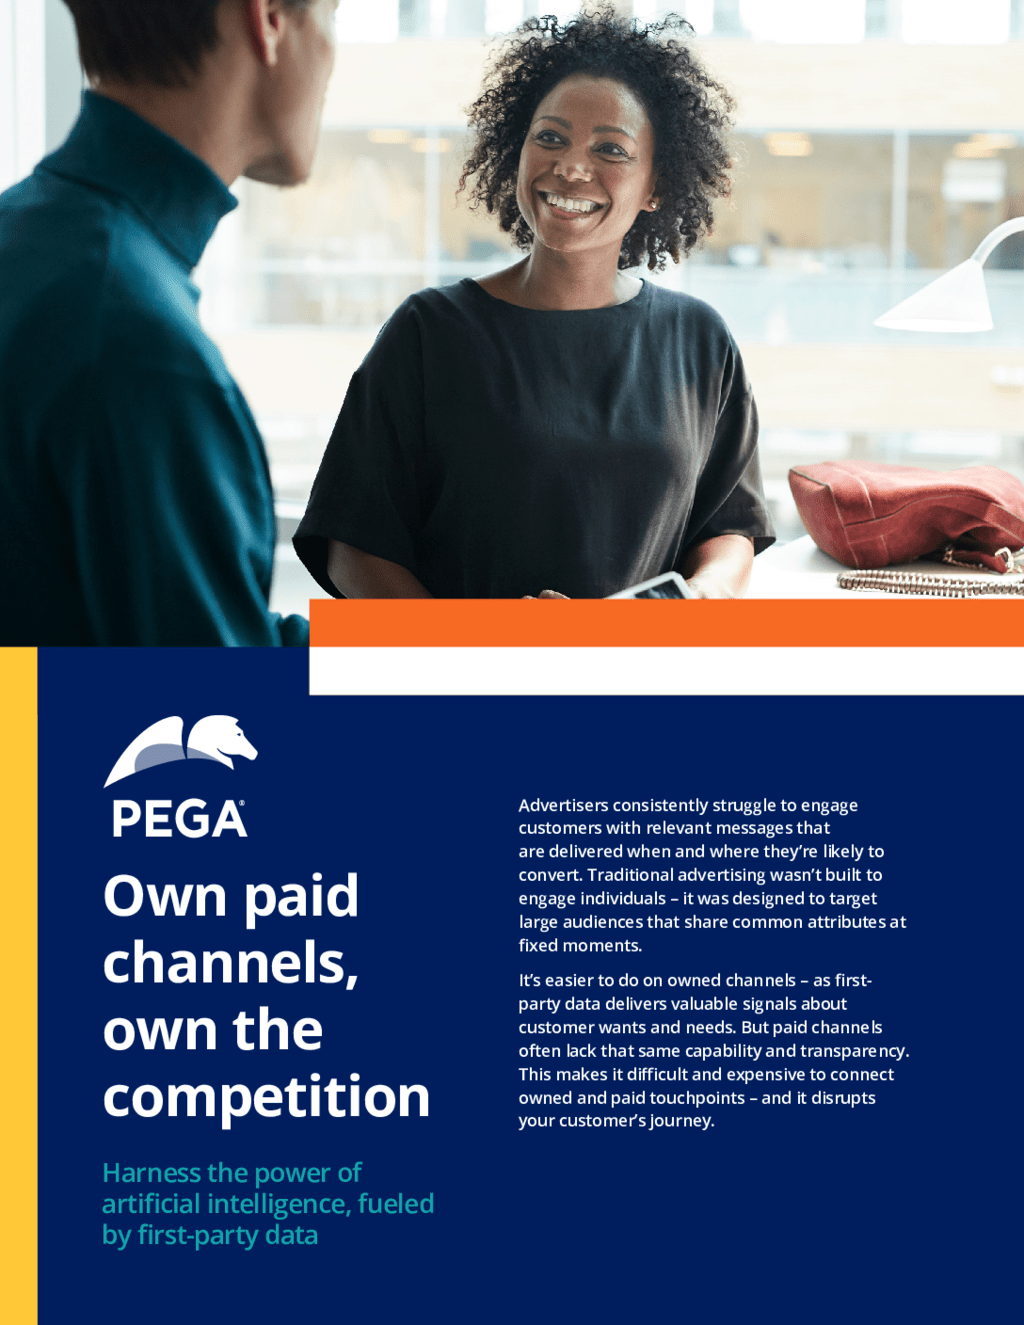 Cover image thumbnail for 'Own paid channels, own the competition' white paper